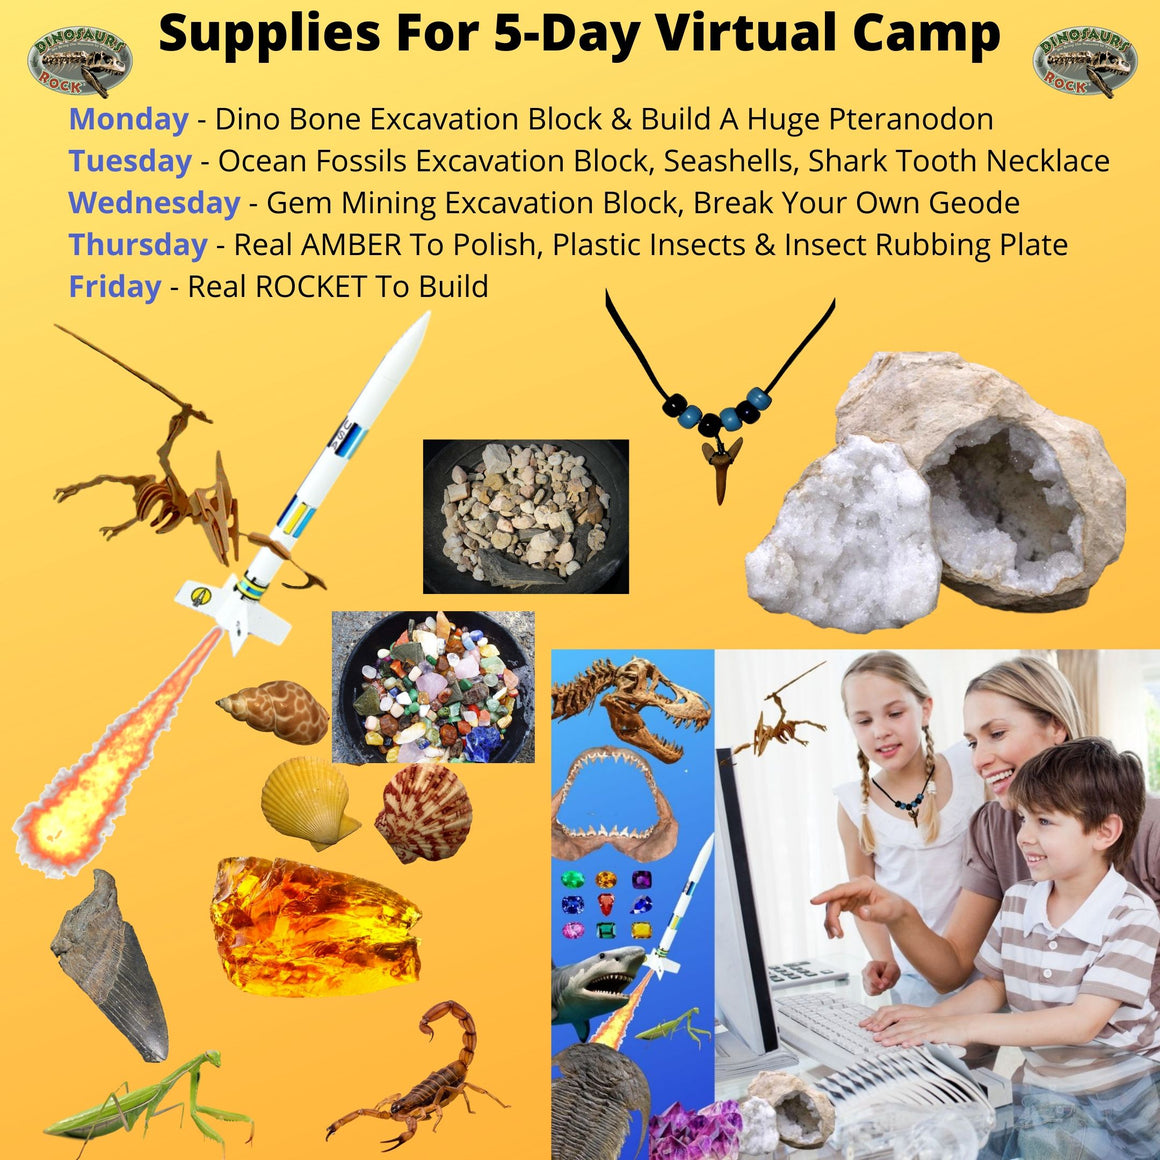 5-Day Virtual Camp Supplies with Complete Instructions